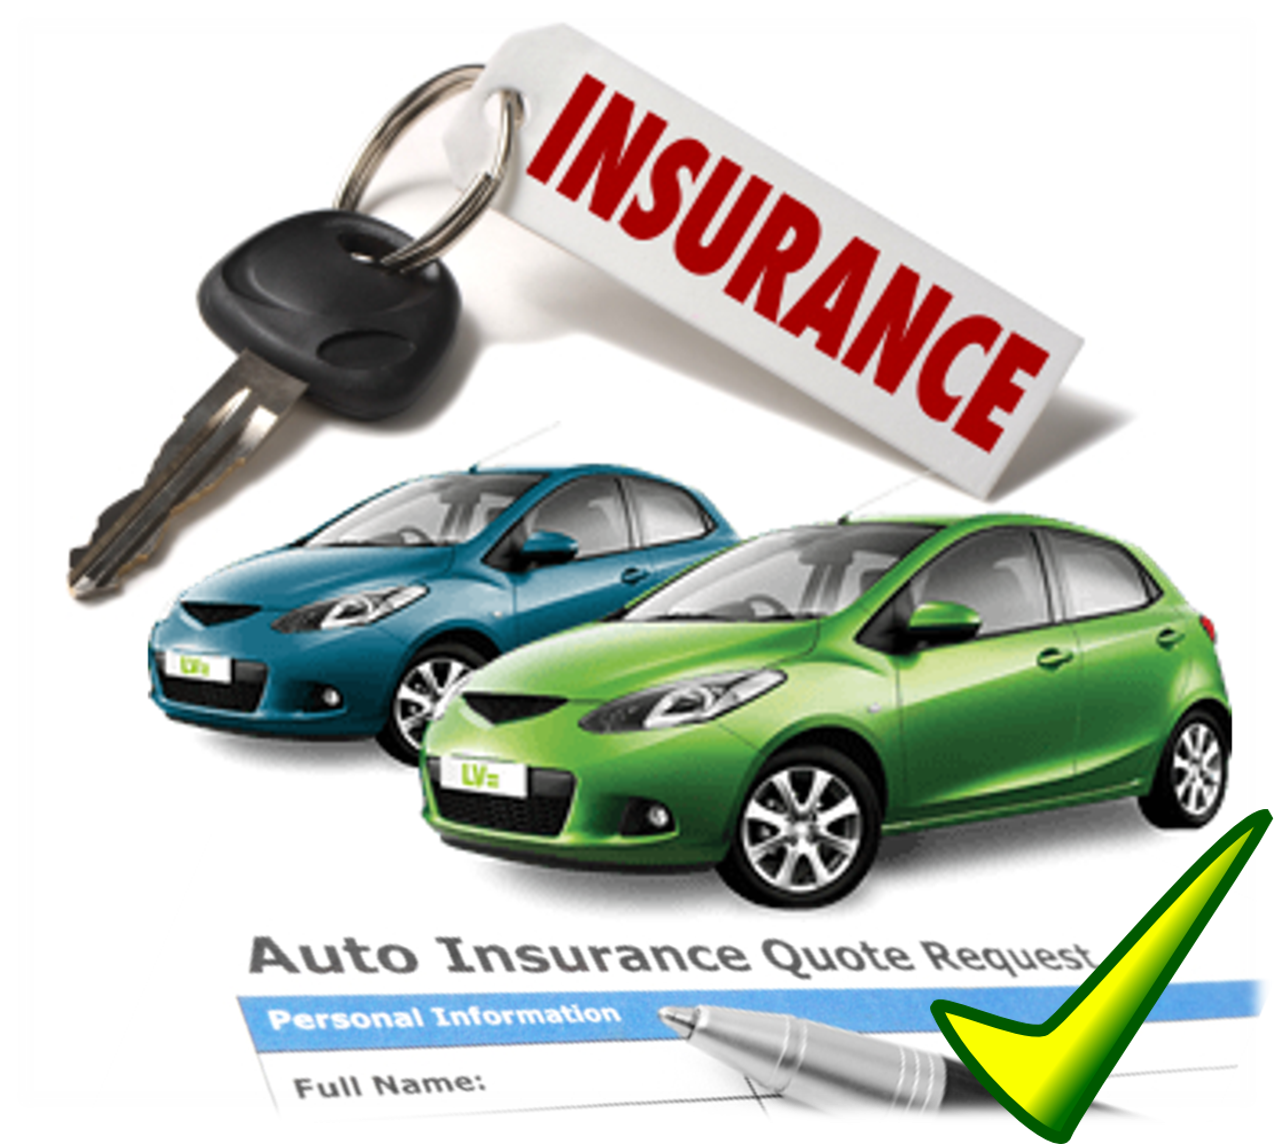 Key Benefits of Bajaj Allianz Car Insurance